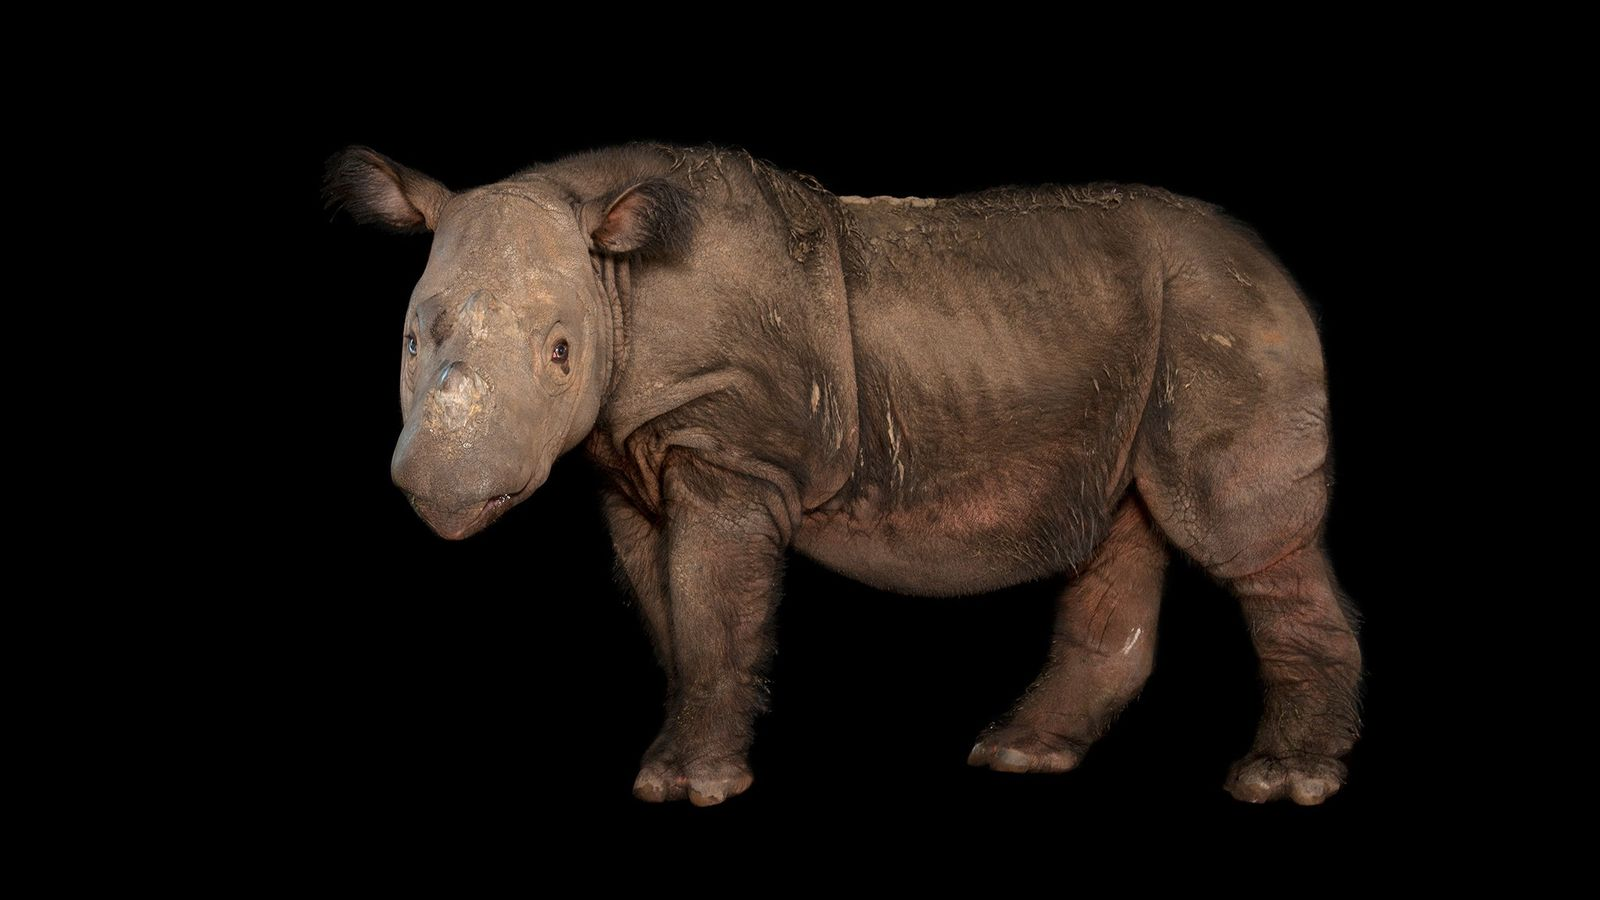 A male rhino named Harapan poses at the White Oak Conservation Center in Florida, where he ...